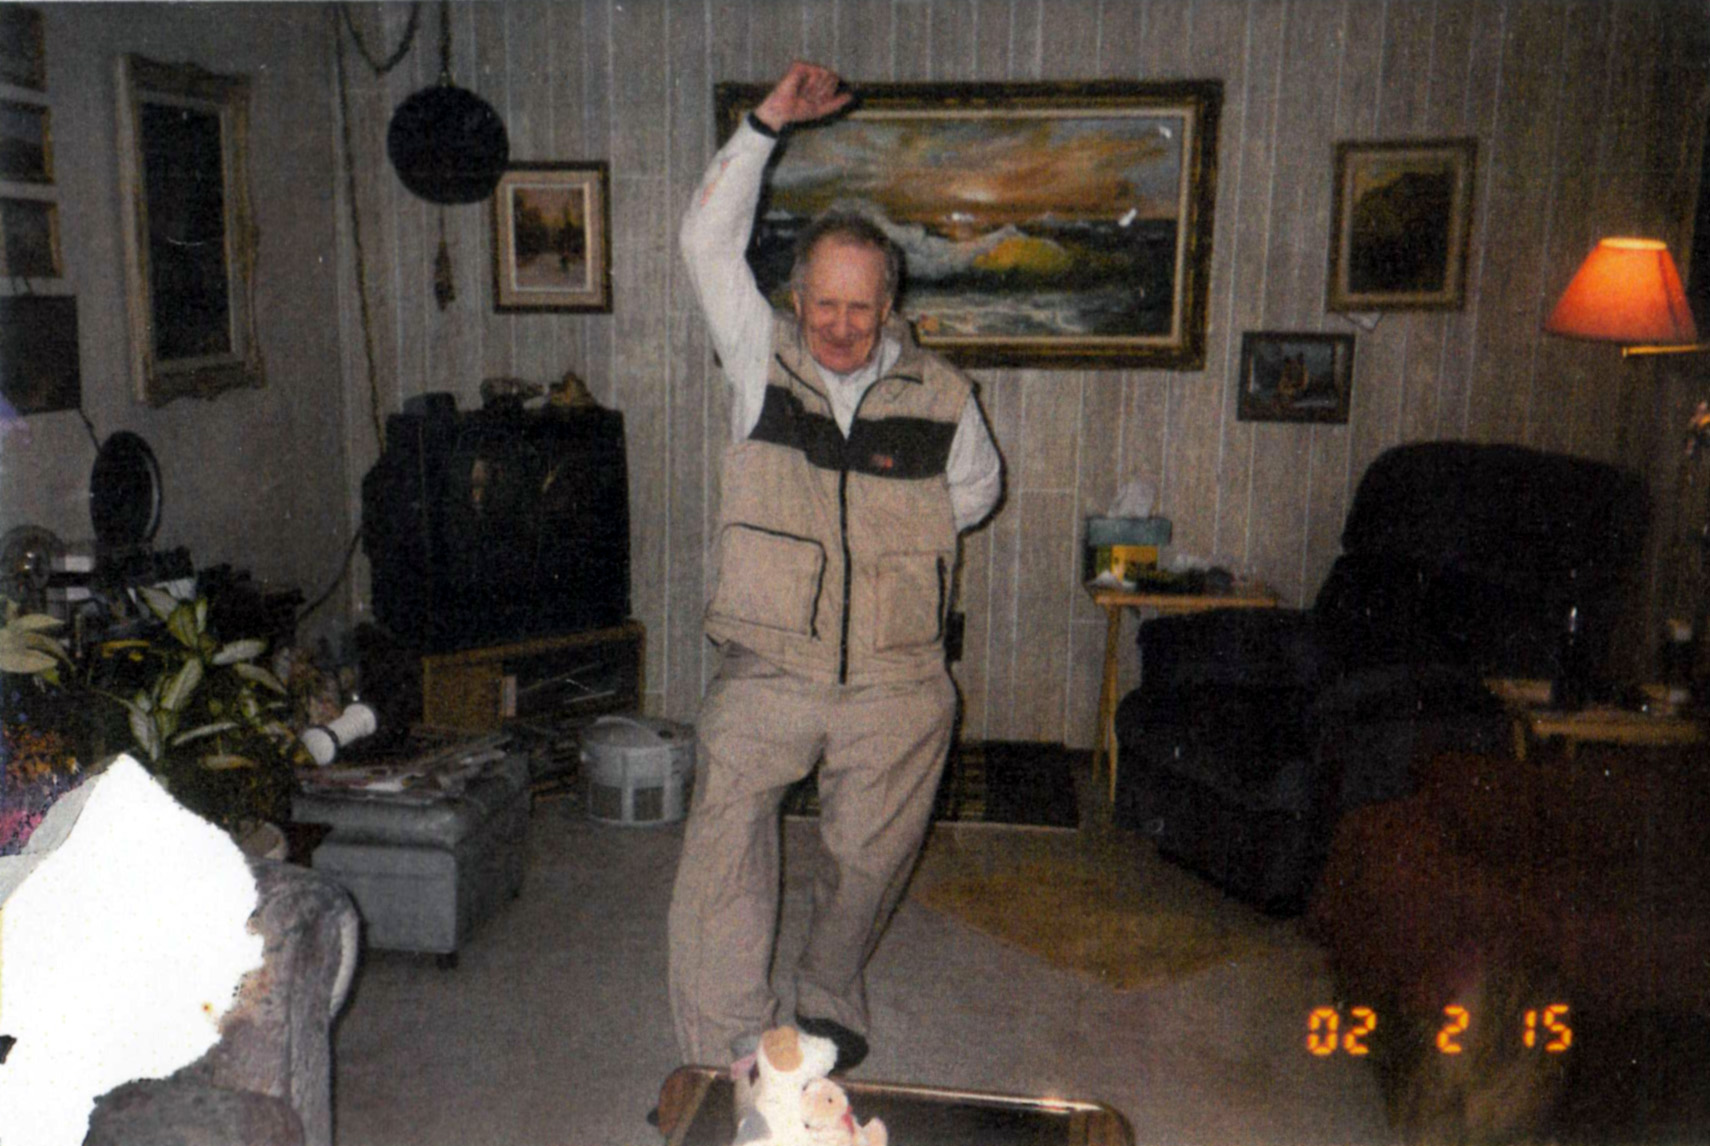 Max Juby dancing at the home of Geologist John Lill, in Toronto